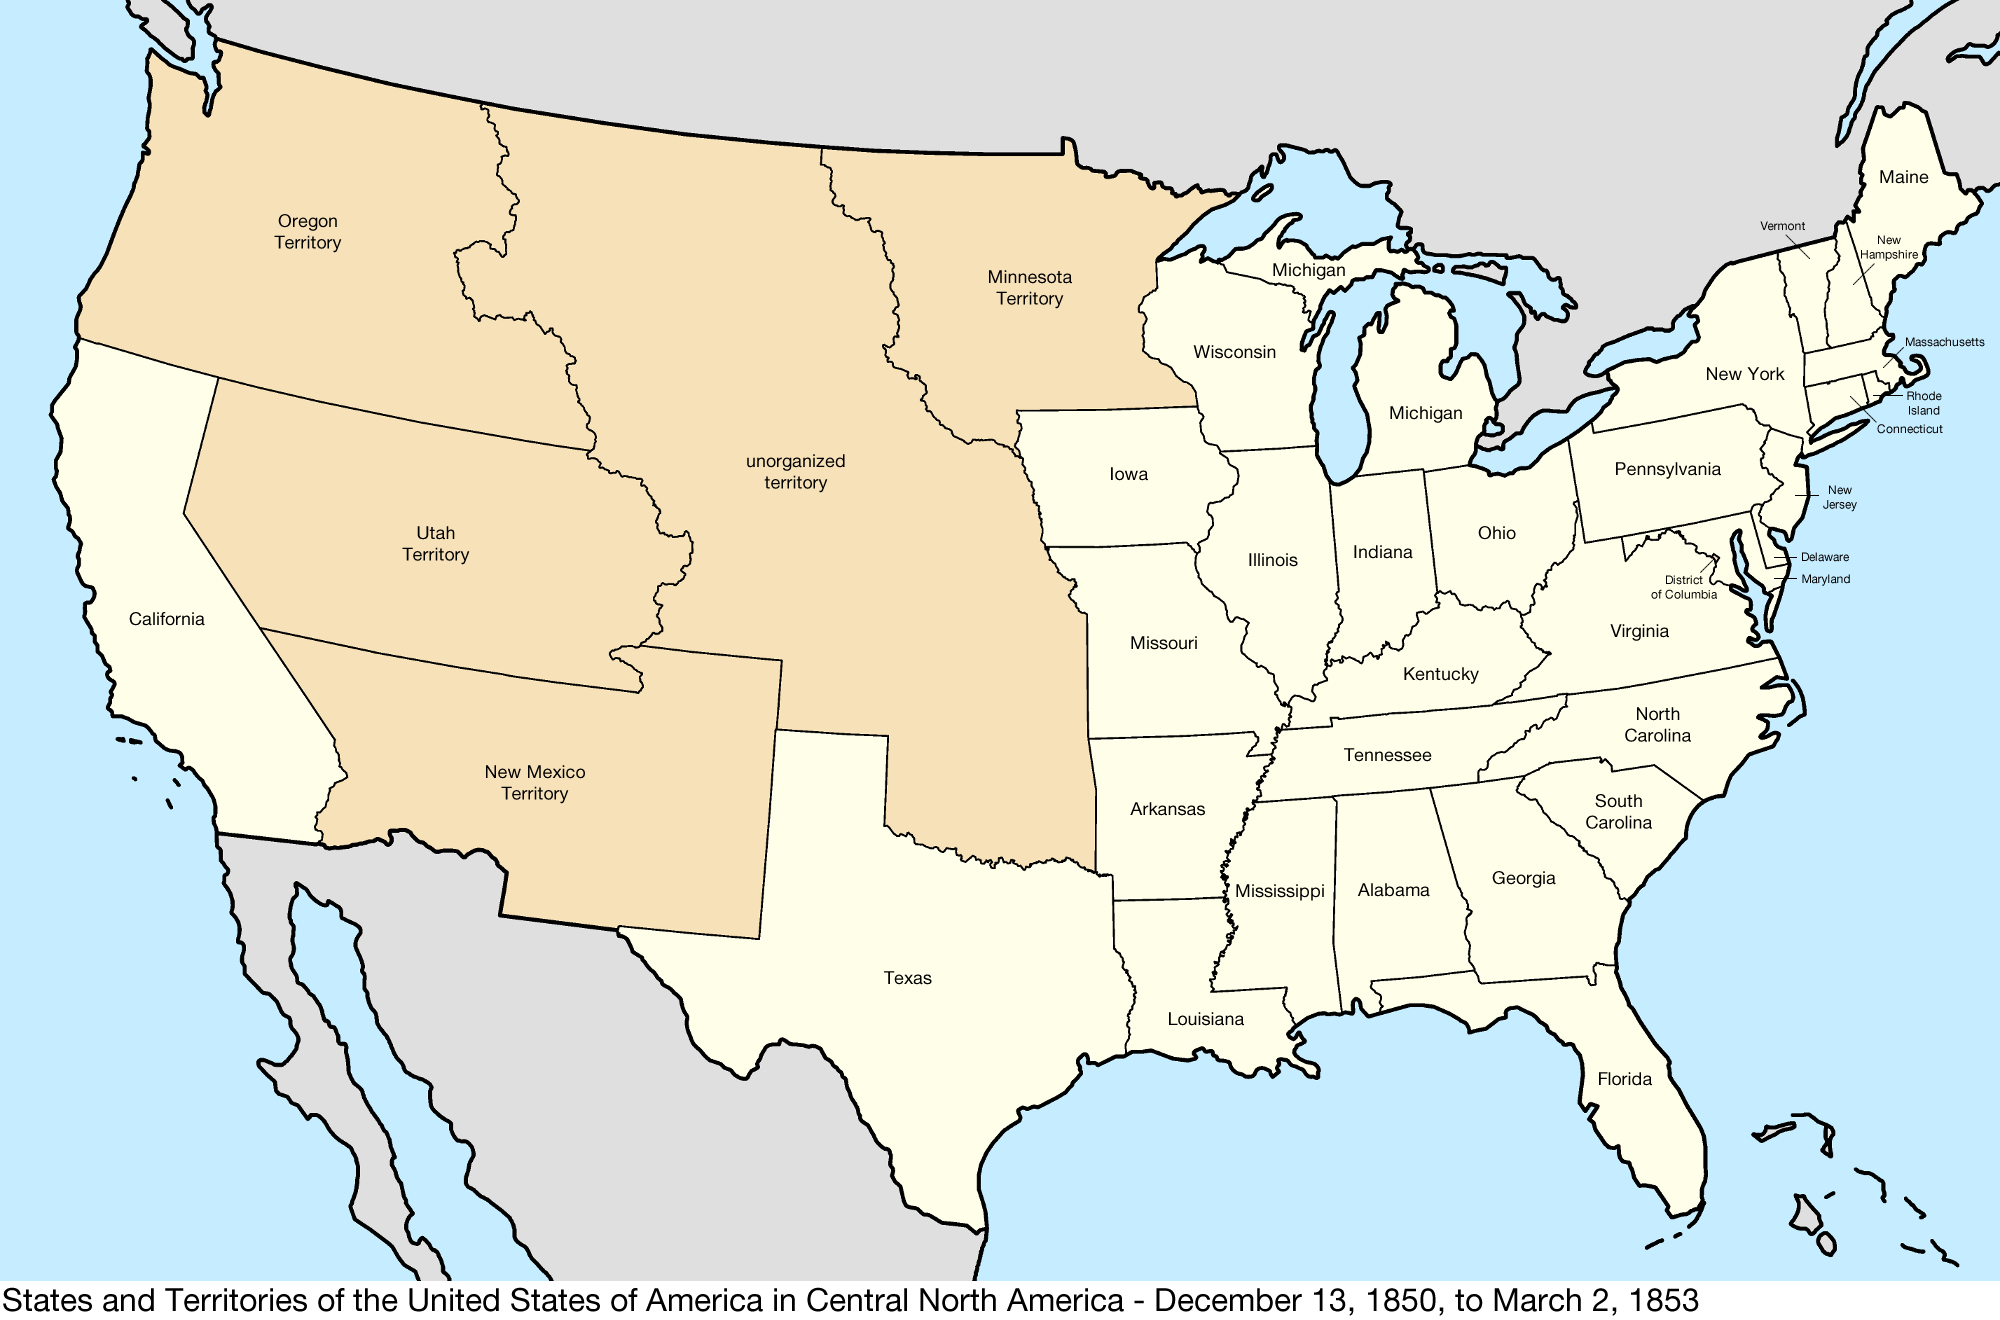 File:United States Central map 1850-12-13 to 1853-03-02.png ...